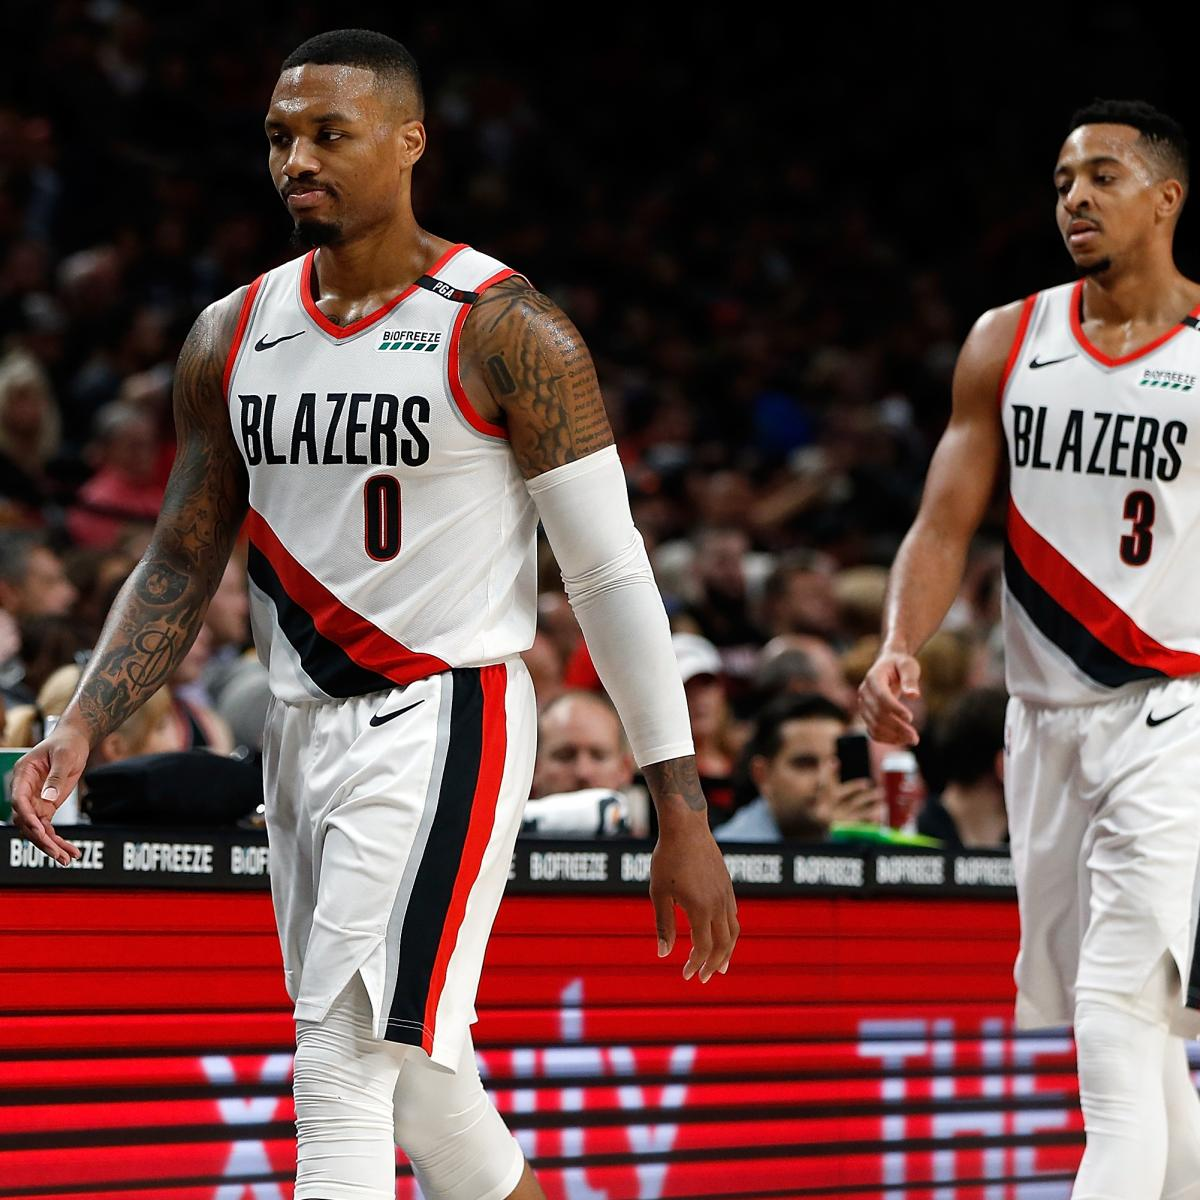 Portland Blazers Players: NBA Trade Rumors: Blazers Want Impact Player Next To